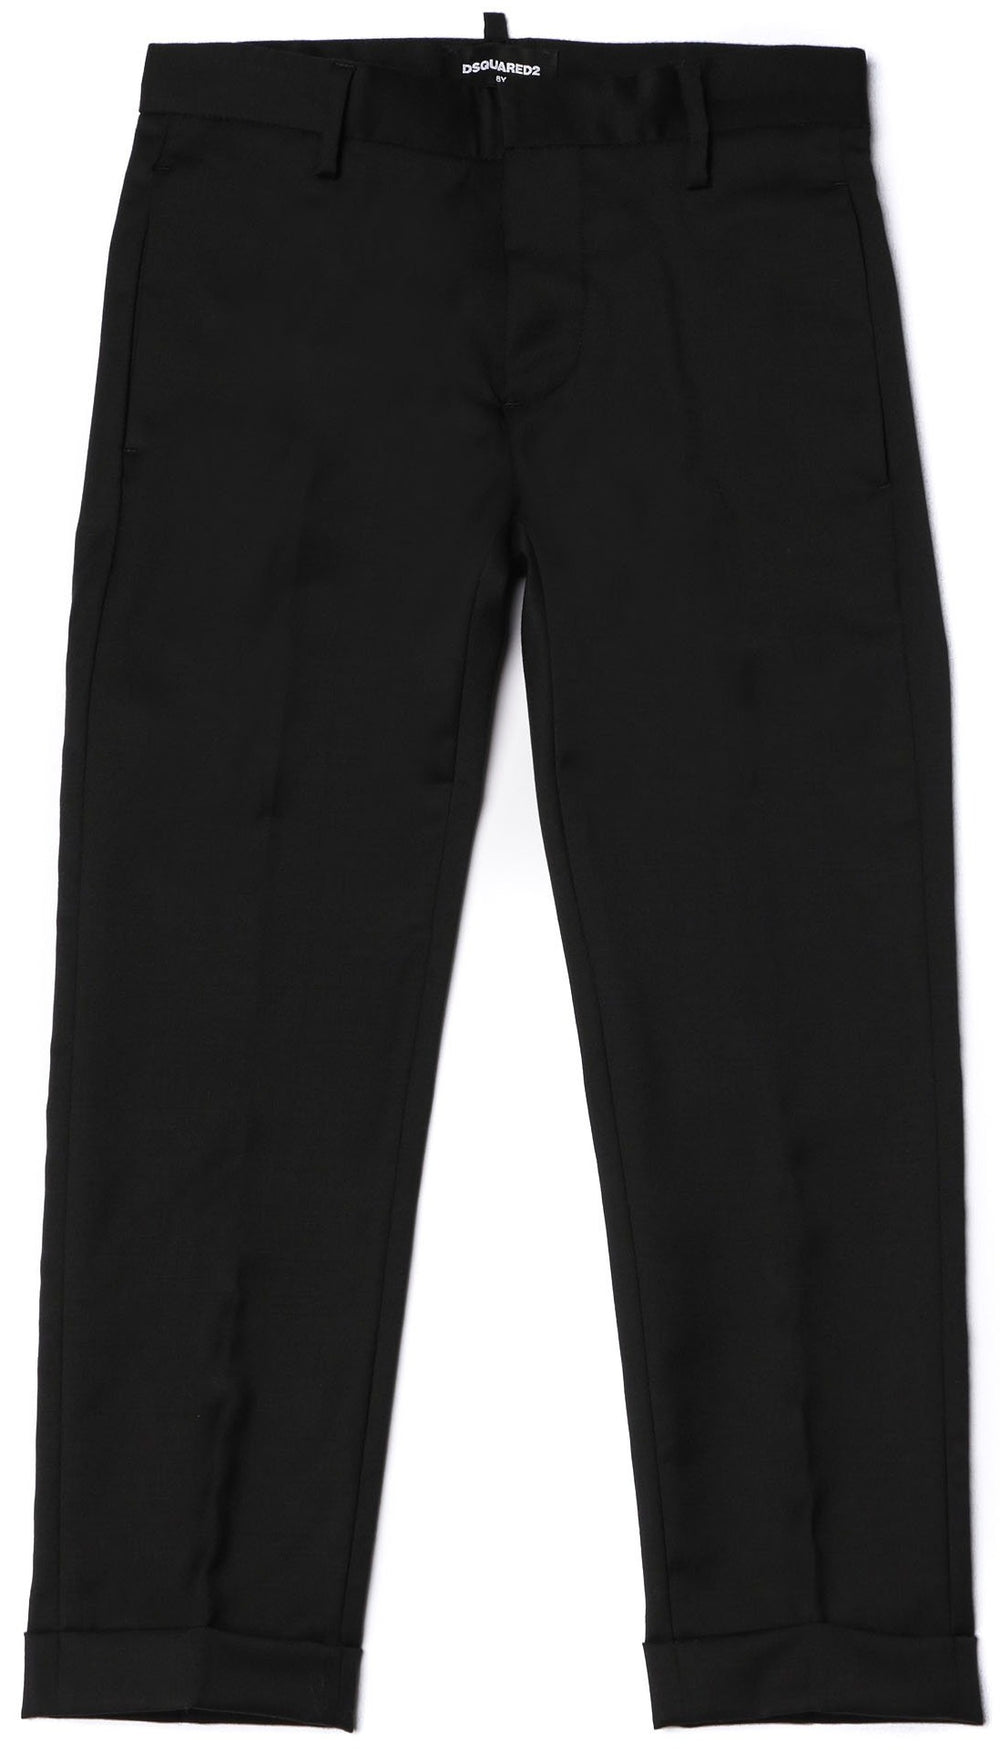 DSQUARED2 KIDS Black Party Trousers